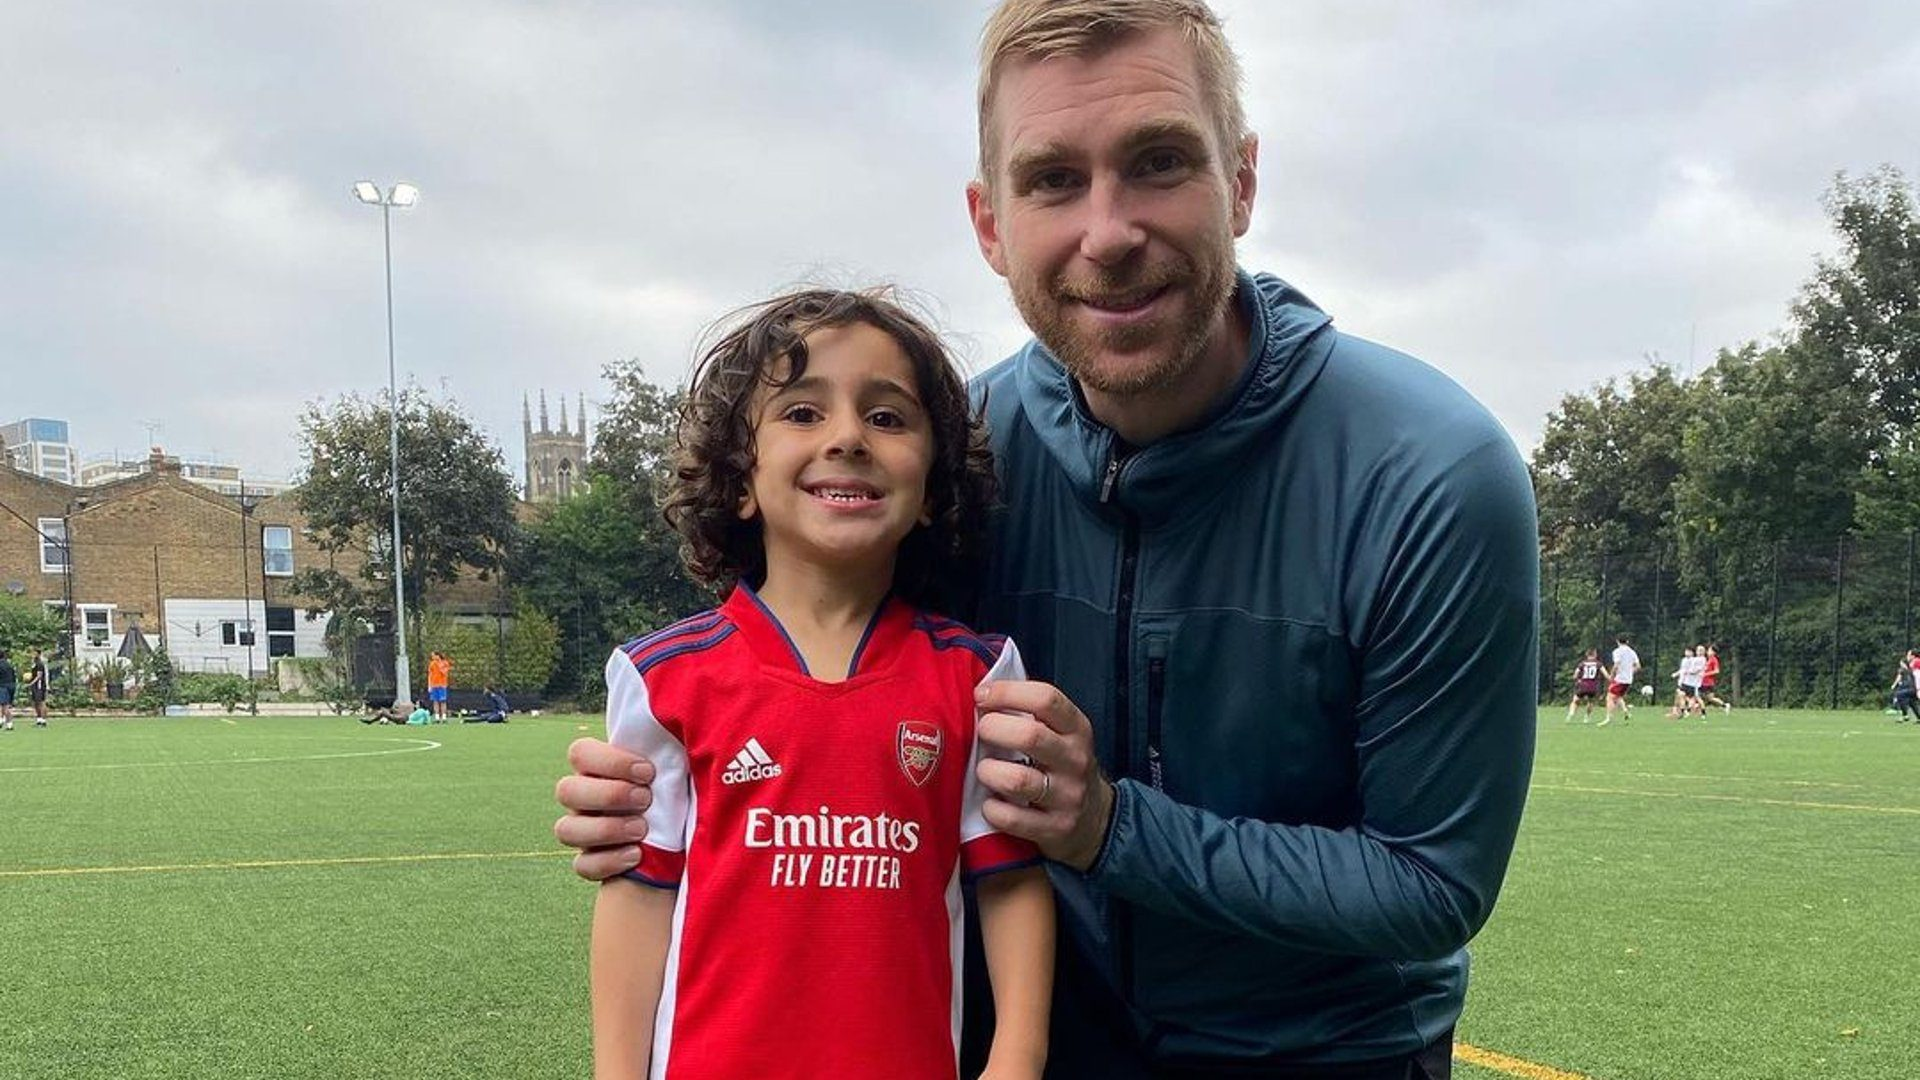 Arsenal's Youngest Ever Recruit